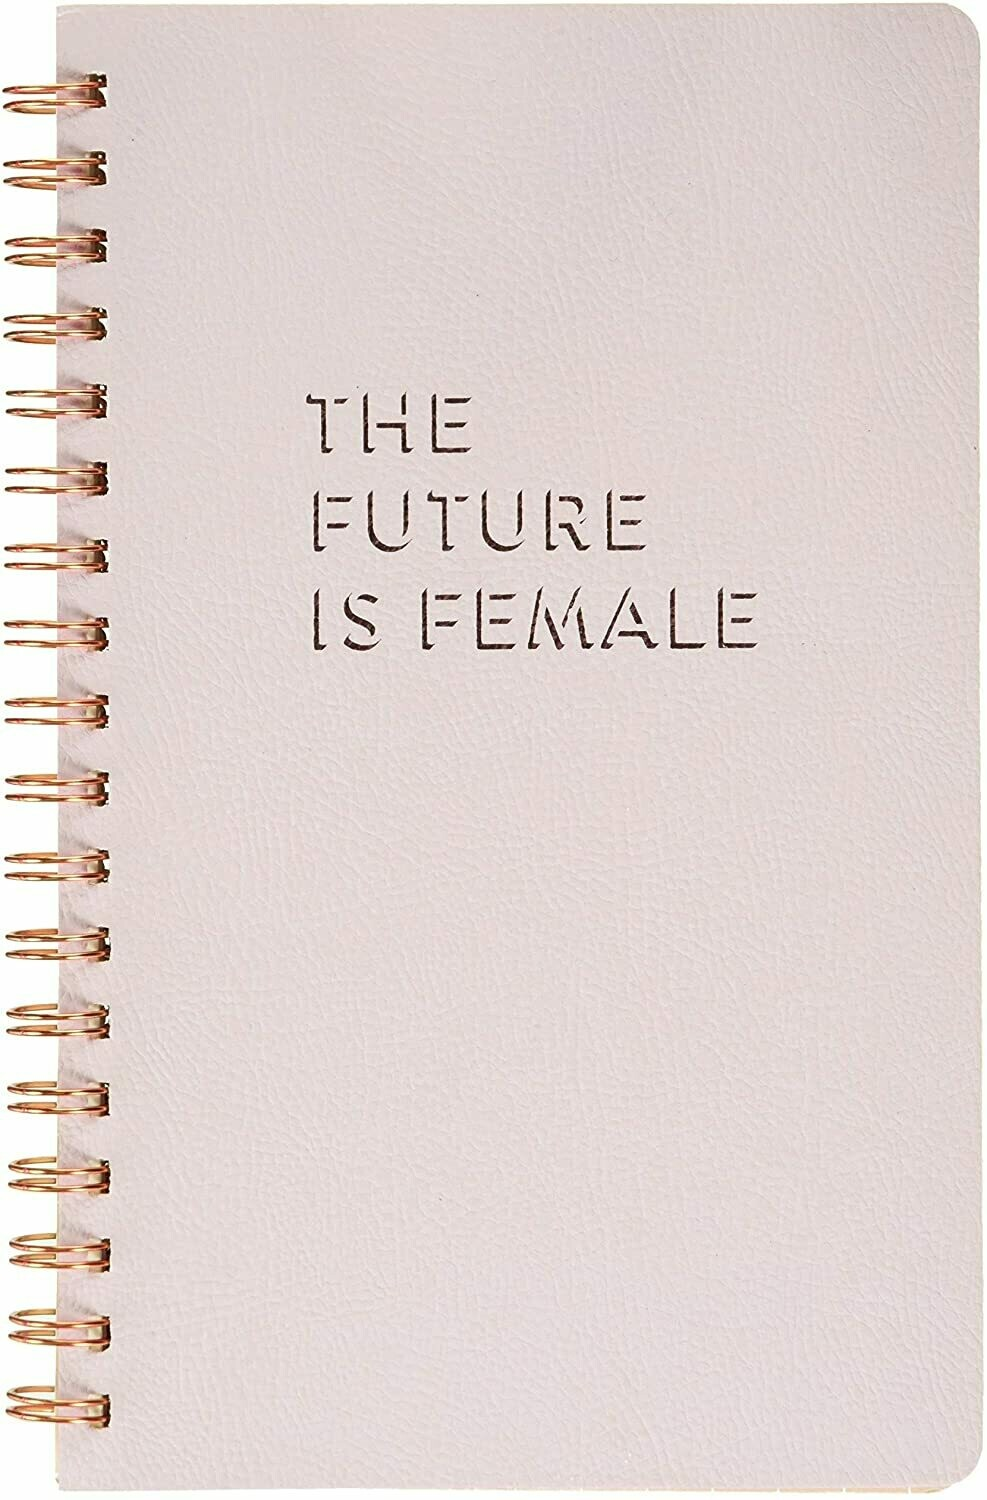 The Future is Female Spiral